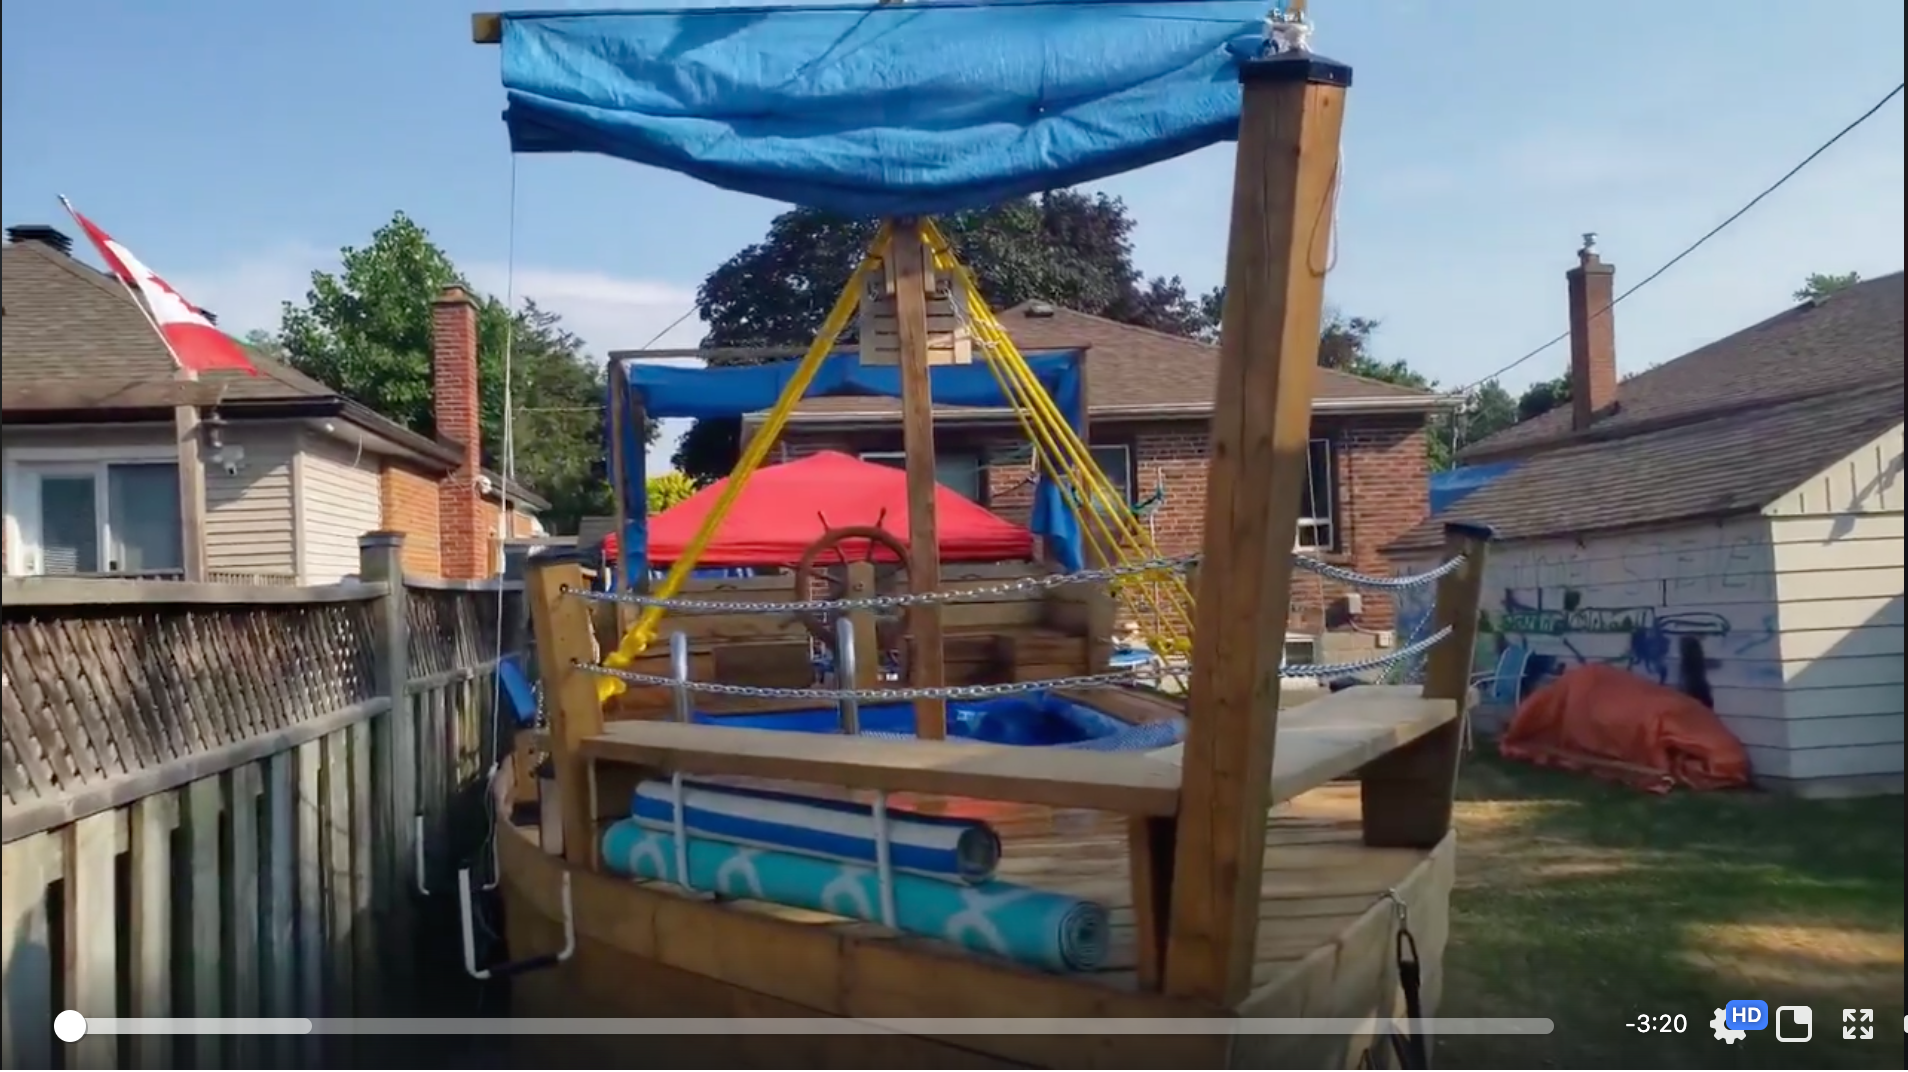 Toronto family builds backyard pirate ship but the city forces them to dismantle it